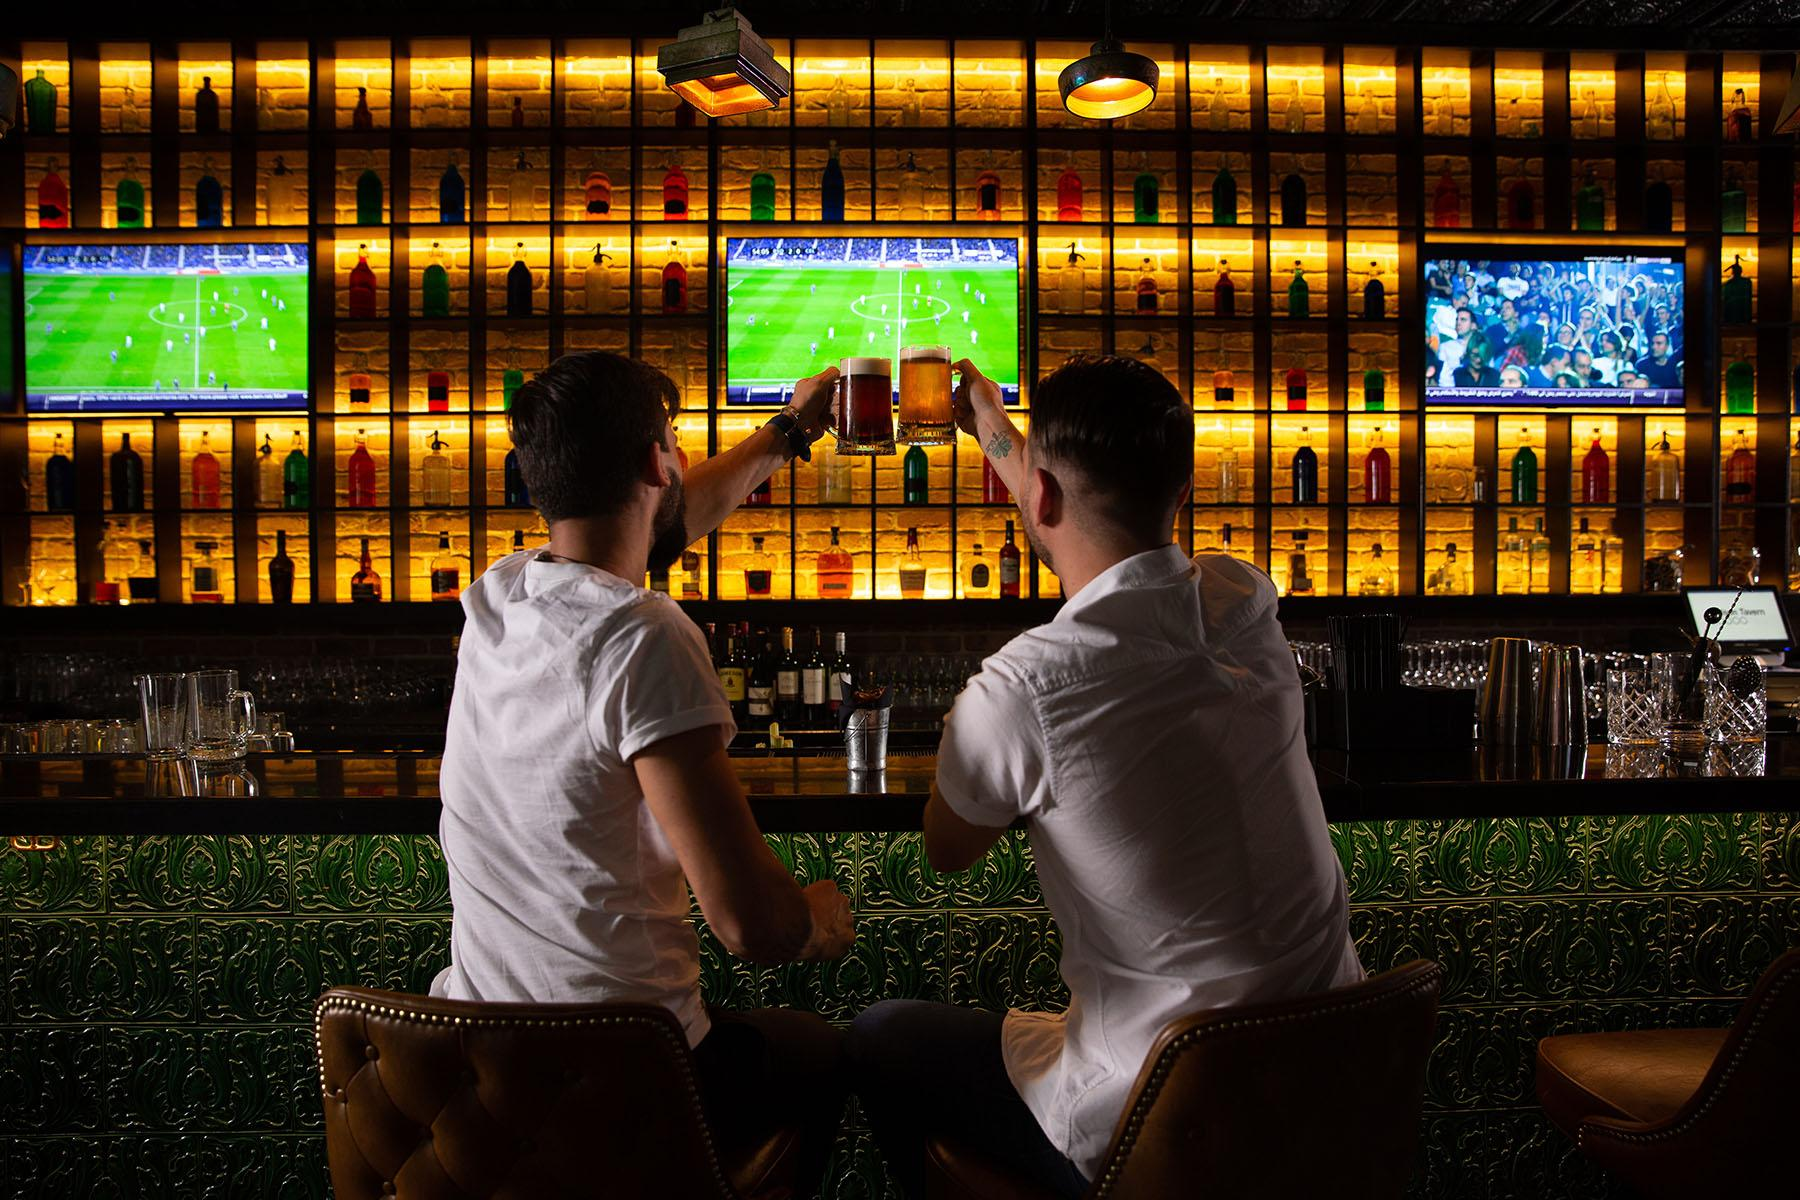 Men cheers at bar with soccer game on in background